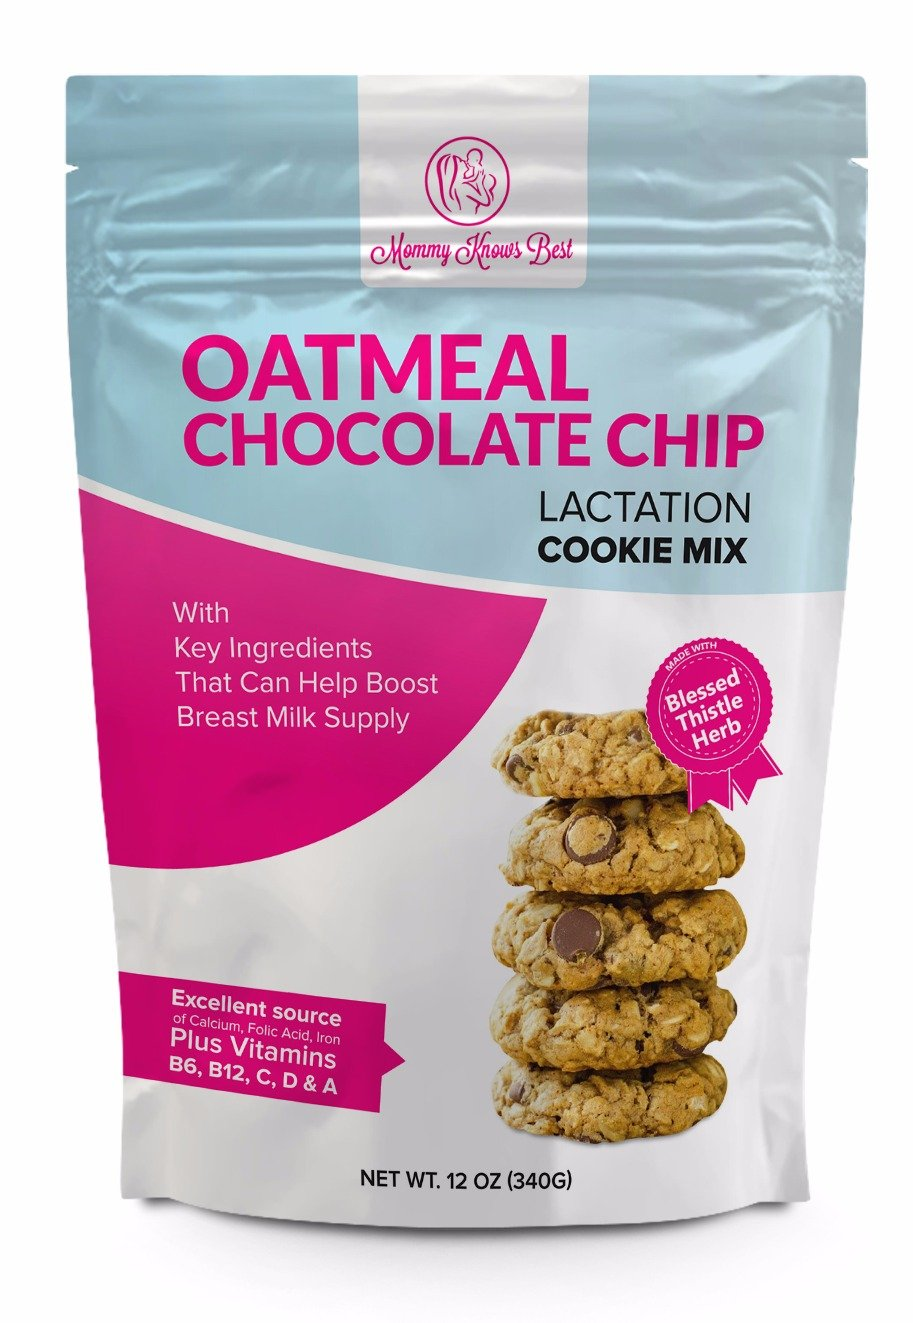 Lactation Cookie Mix with Blessed Thistle - Formulated with Key Ingredients To Help Boost and Support Breast Milk Supply In Nursing Mothers